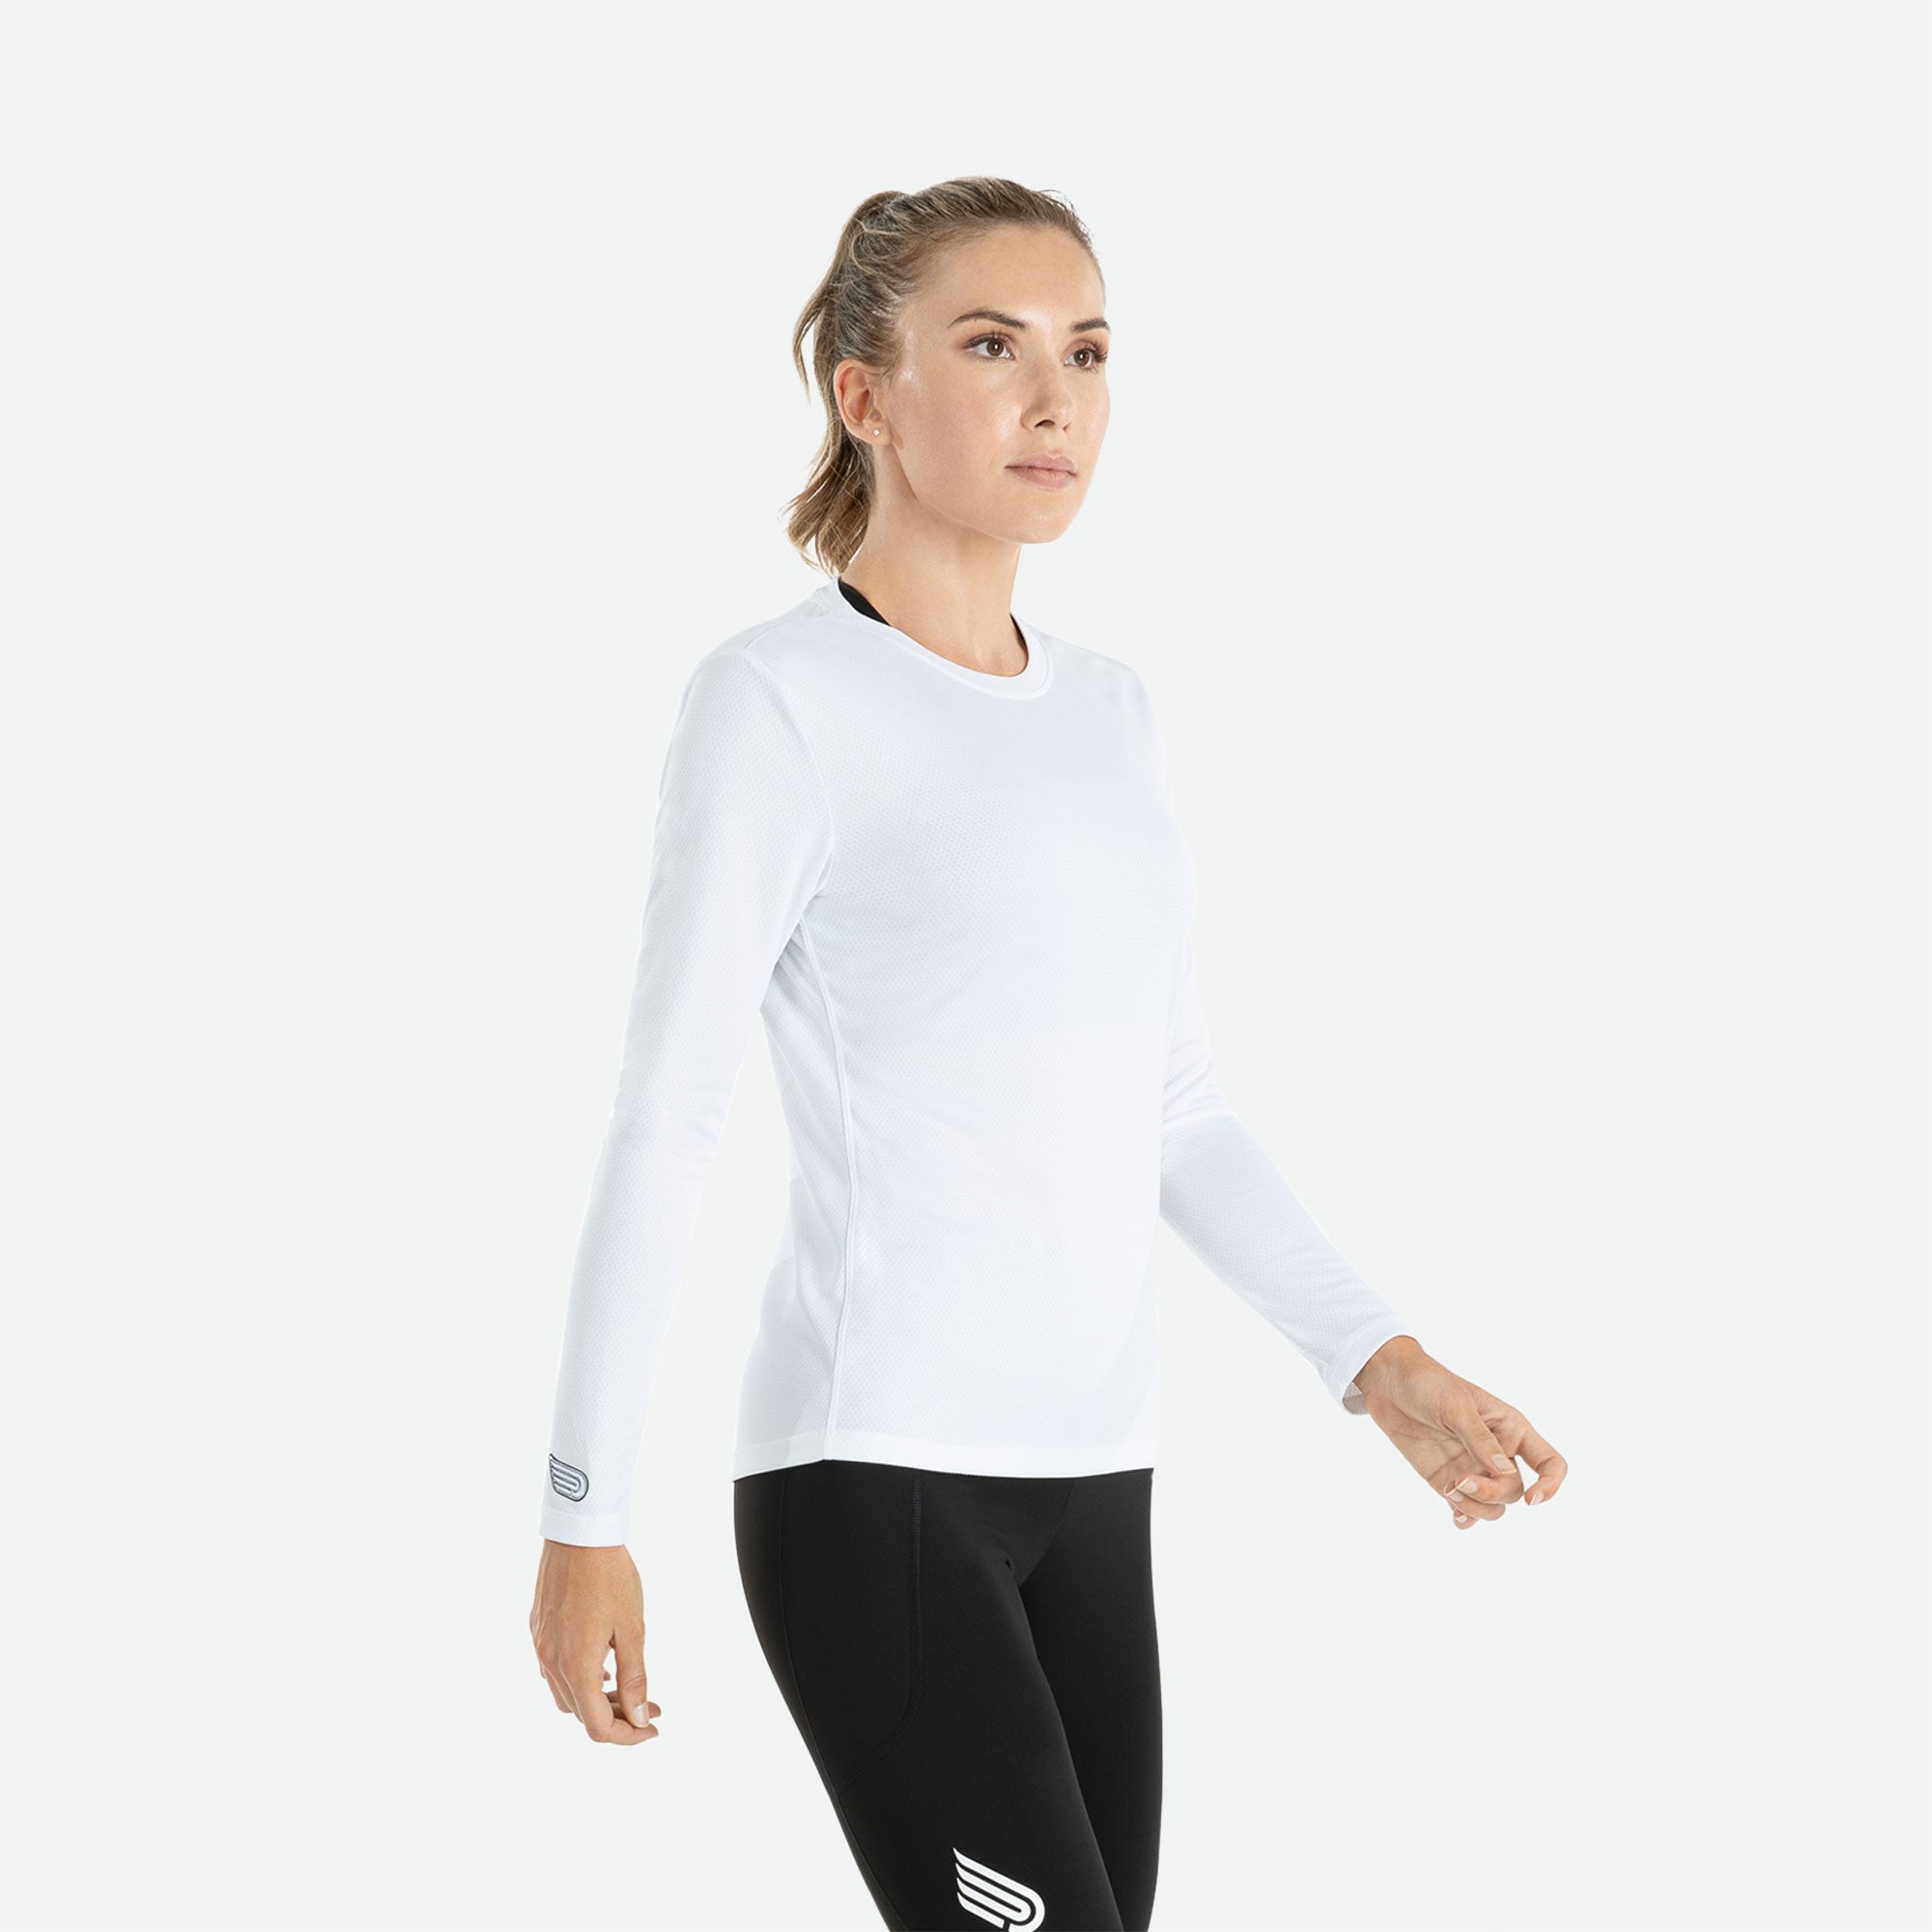 Our Pressio women's white Hāpai long sleeve t-shirt features EcoTECH MF fabric which has dual filament recycled polyester yarns from Unifi for superior moisture control to keep you dry.